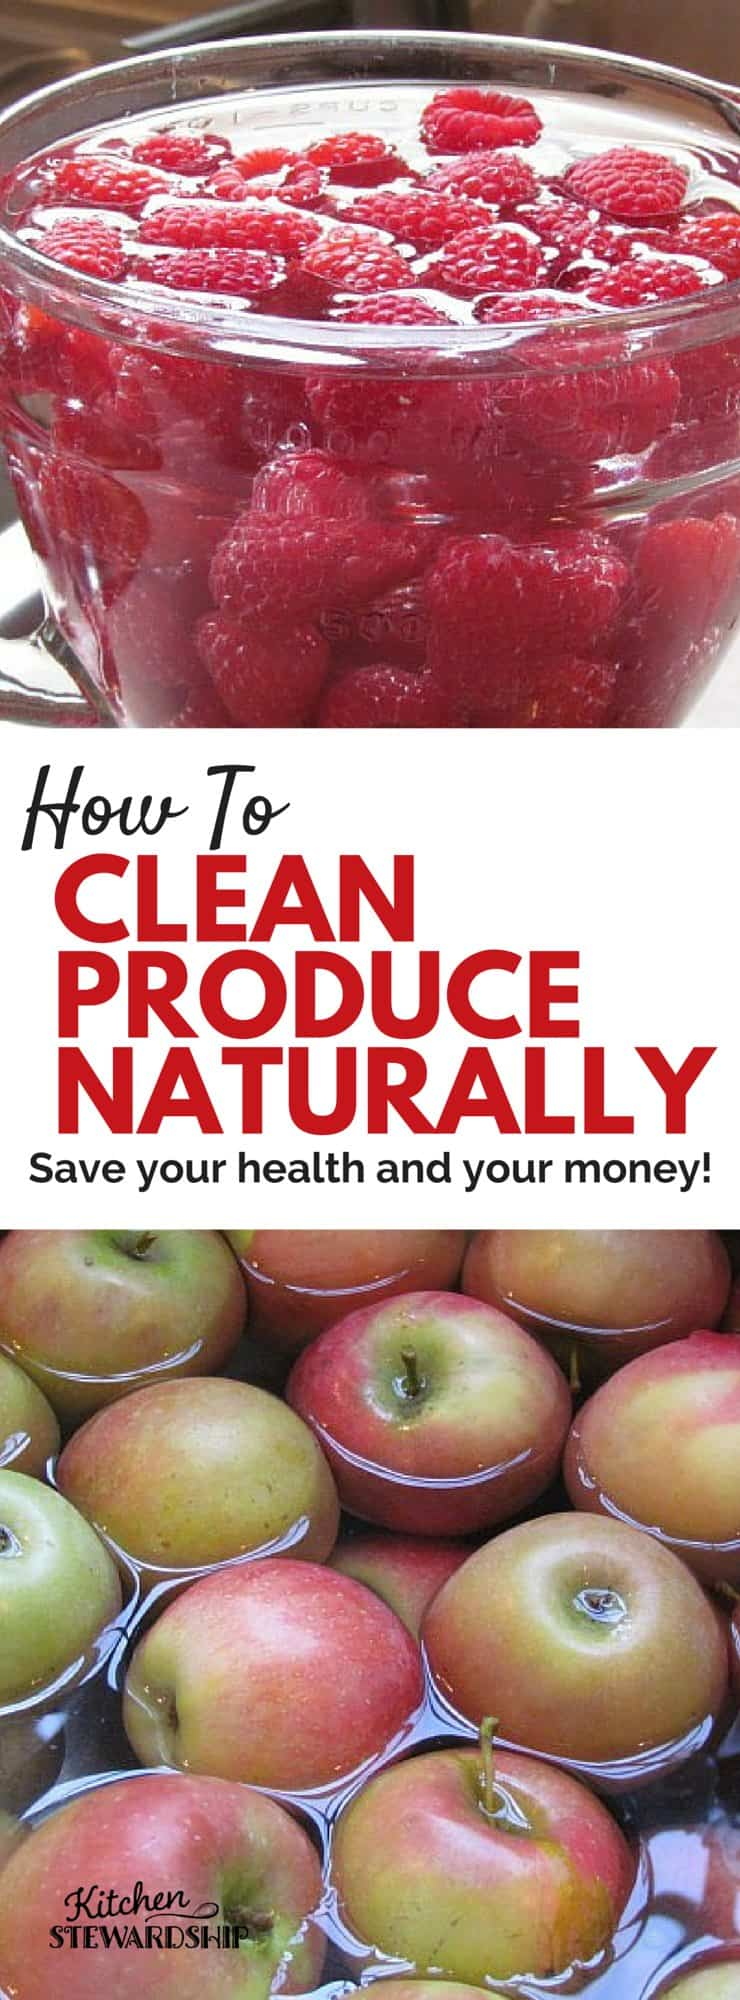 How To Clean Produce Naturally